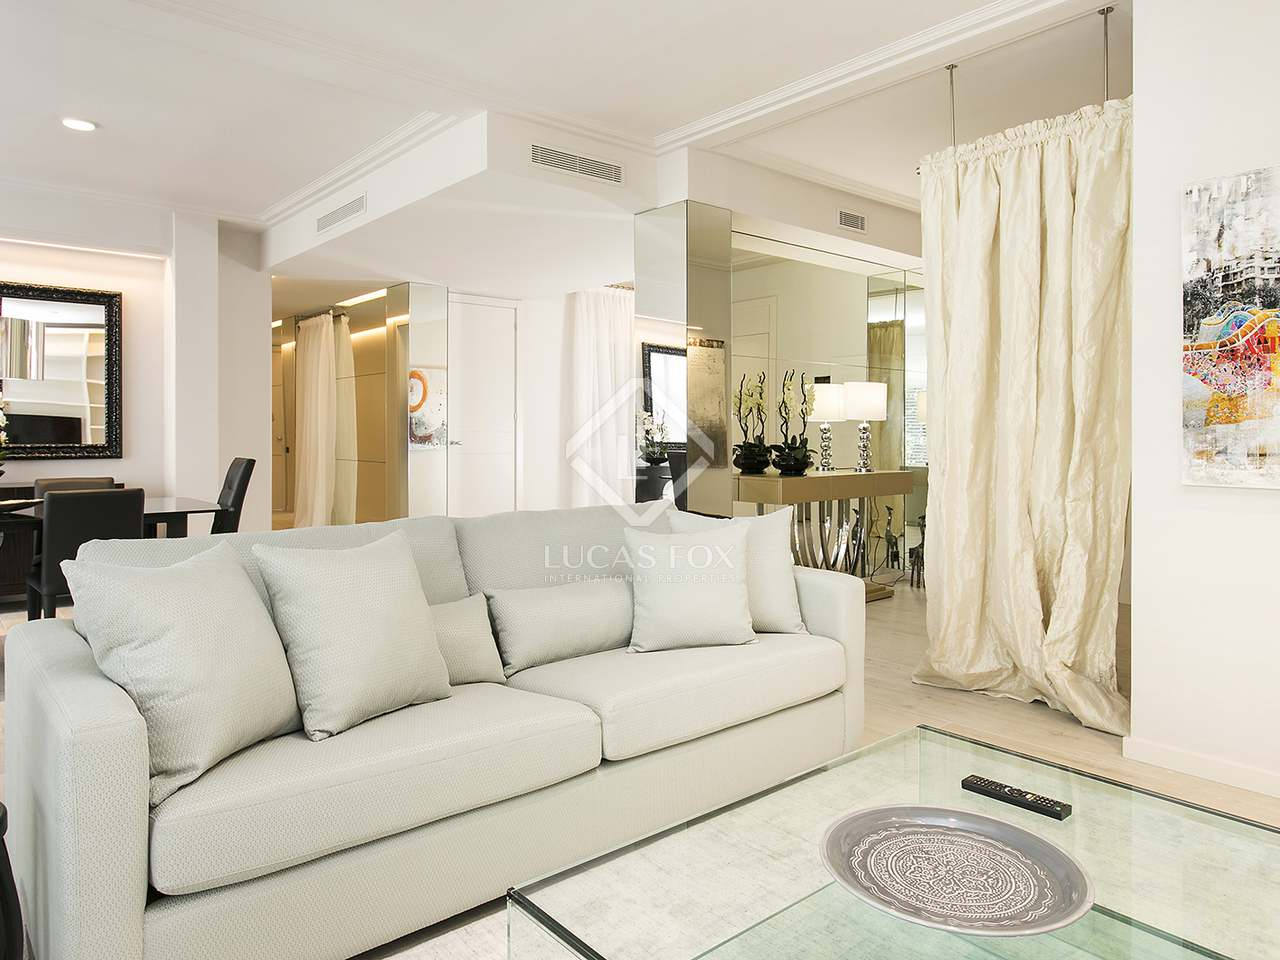 arrange small bedroom 167m 178 apartment with terrace for rent sant gervasi galvany 10093